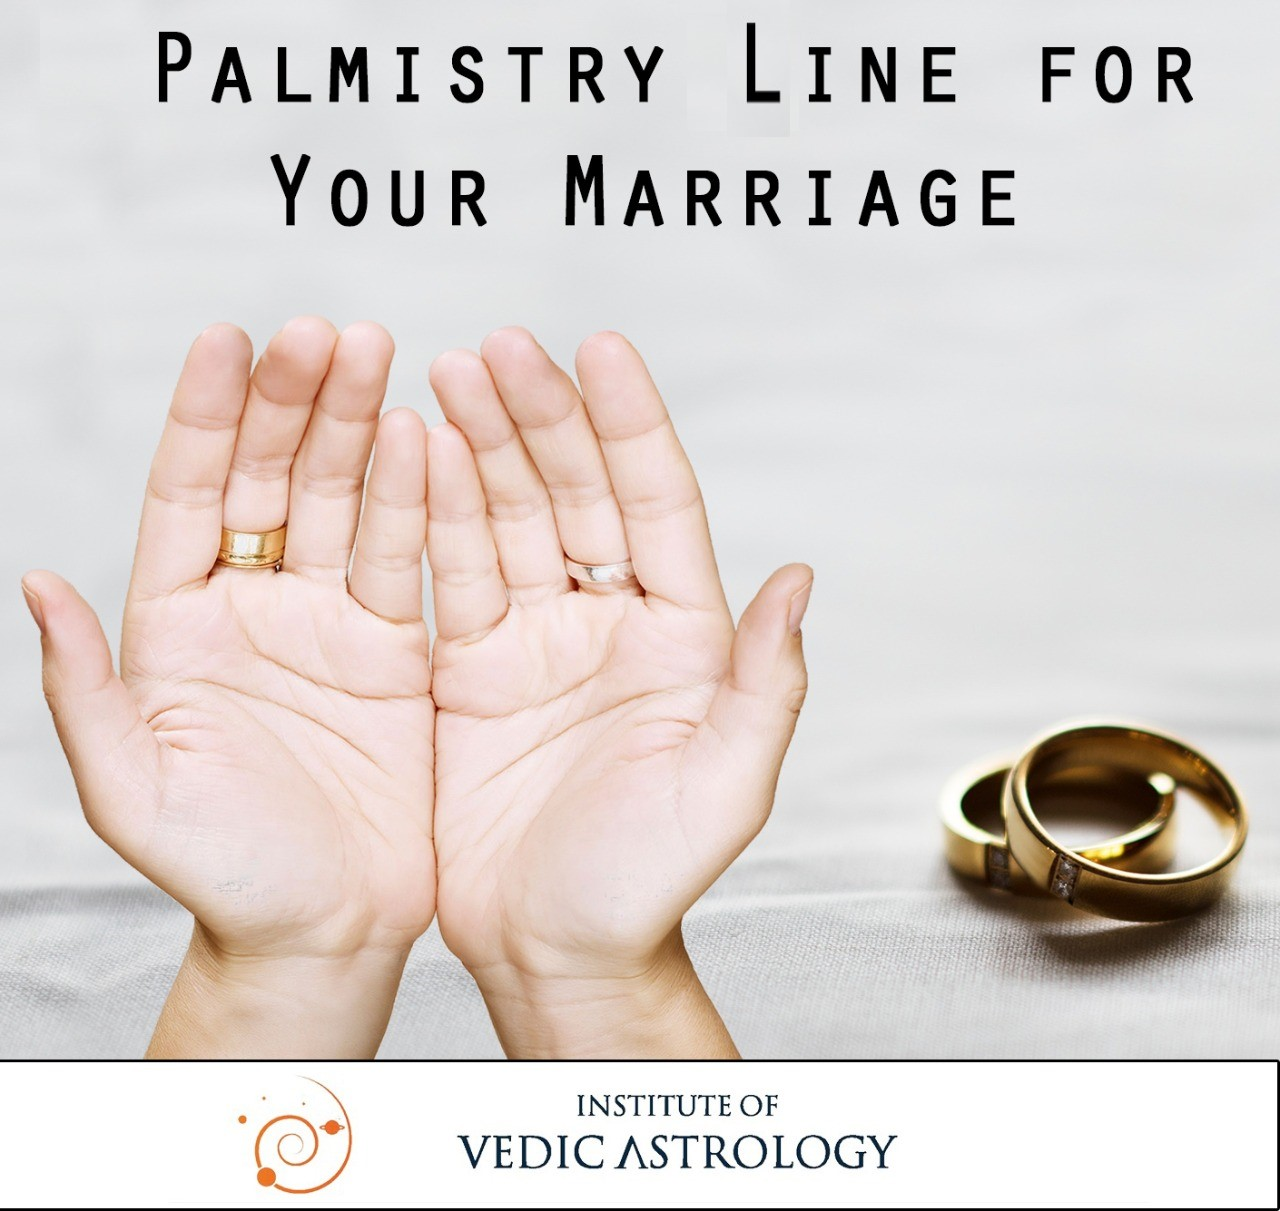 Palmistry Line for Your Marriage